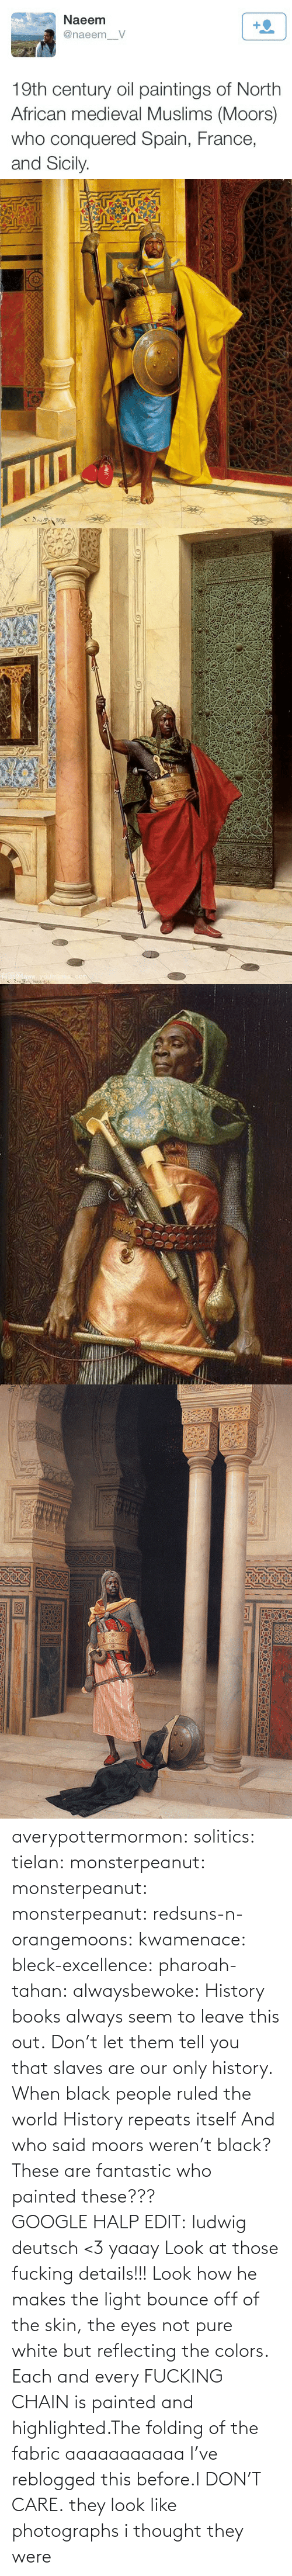 France: Naeem  +2  @naeem_V  19th century oil paintings of North  African medieval Muslims (Moors)  who conquered Spain, France,  and Sicily.   Nww.youhuaua com averypottermormon: solitics:  tielan:  monsterpeanut:  monsterpeanut:  monsterpeanut:  redsuns-n-orangemoons:  kwamenace:  bleck-excellence:  pharoah-tahan:  alwaysbewoke:  History books always seem to leave this out.  Don't let them tell you that slaves are our only history.  When black people ruled the world  History repeats itself  And who said moors weren't black?  These are fantastic who painted these???GOOGLE HALP EDIT: ludwig deutsch <3   yaaay   Look at those fucking details!!! Look how he makes the light bounce off of the skin, the eyes not pure white but reflecting the colors. Each and every FUCKING CHAIN is painted and highlighted.The folding of the fabric aaaaaaaaaaa  I've reblogged this before.I DON'T CARE.  they look like photographs   i thought they were